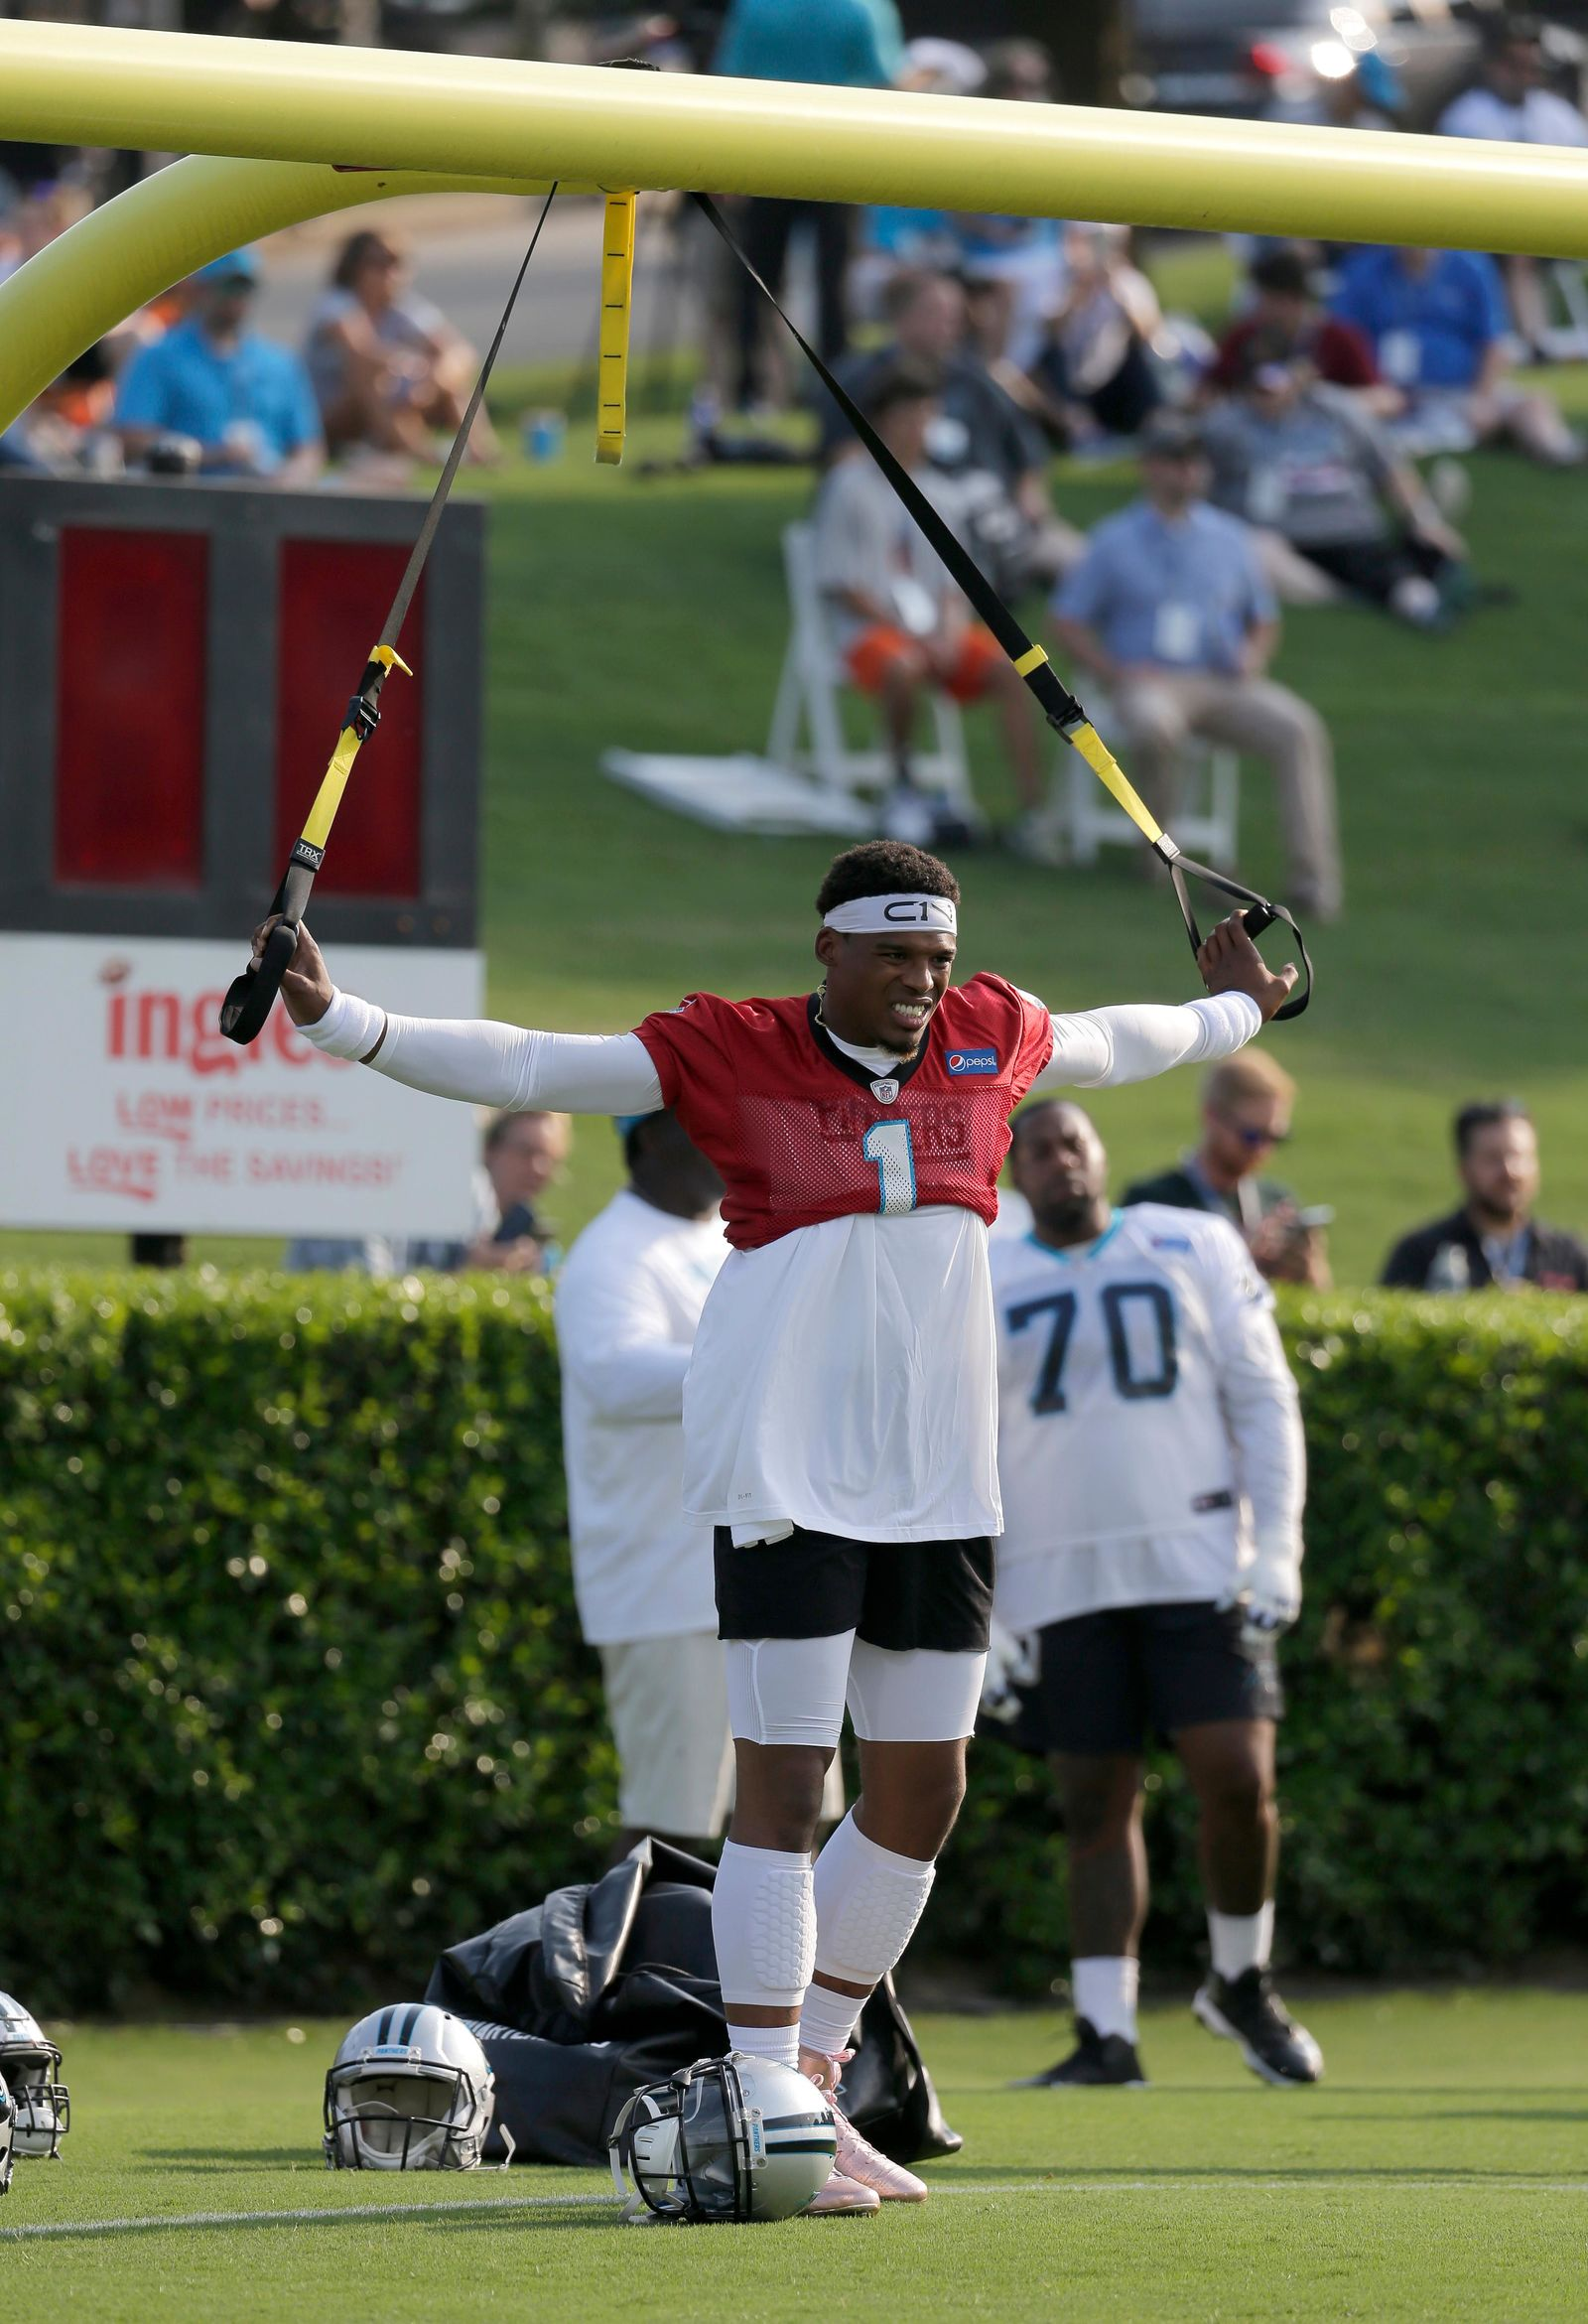 Carolina Panthers' Cam Newton (1) stretches during practice at training camp at Wofford College in Spartanburg, S.C., Wednesday, July 26, 2017. (AP Photo/Chuck Burton)